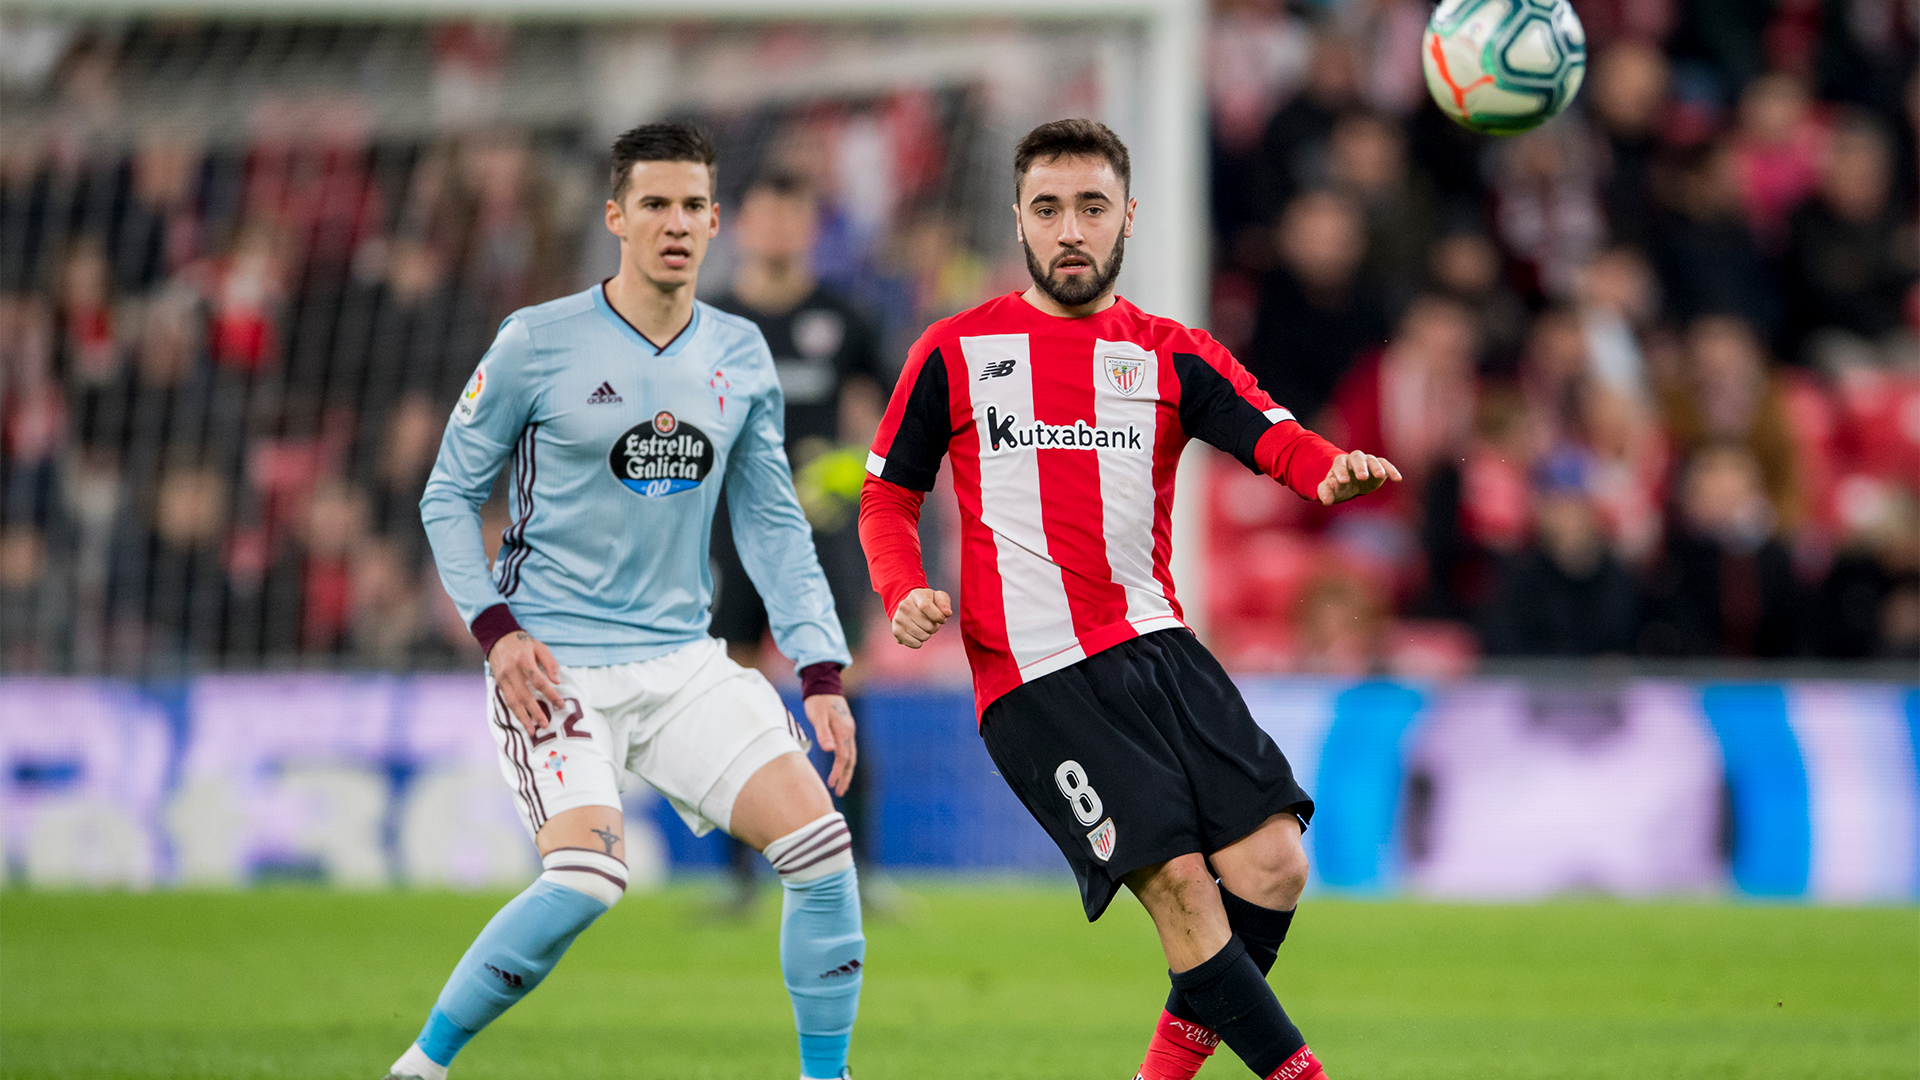 Horario confirmado para el Athletic Club-RC Celta